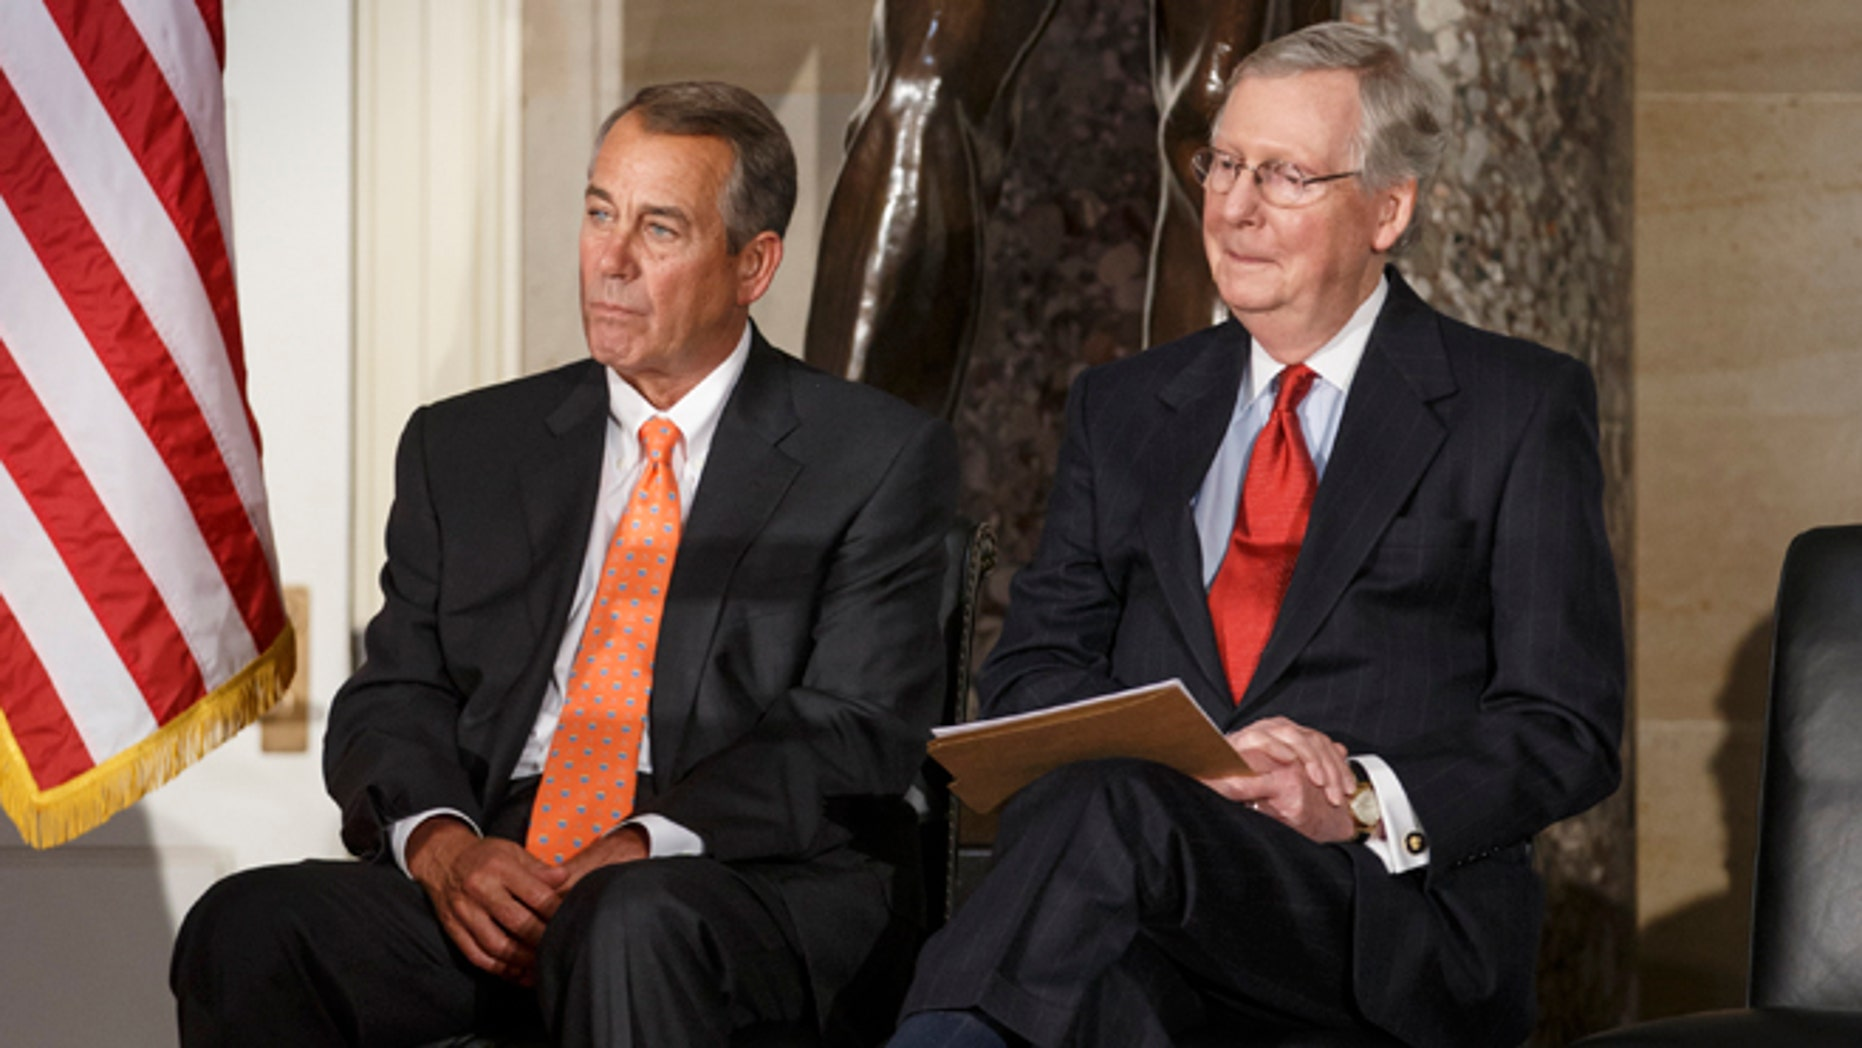 "House Speaker John Boehner of Ohio, and Senate Majority Leader Mitch McConnell of Ky. attend a statue unveiling ceremony honoring former Arizona Sen. Barry Goldwater, Wednesday, Feb. 11, 2015, on Capitol Hill in Washington. Boehner and McConnell are at a standstill over provisions attached to a Homeland Security spending bill aimed at blocking President Barack Obama's executive actions on immigration. McConnell declared a Senate stalemate Tuesday and called on the House to make the next move to avoid an agency shutdown. House Republicans said they had no intention of doing so and today, Wednesday, Feb. 11, 2015, Speaker Boehner declared that Senate Democrats should ""get off their ass"" and pass a bill to fund the Homeland Security Department and restrict President Barack Obama's executive moves on immigration.  (AP Photo/J. Scott Applewhite)"